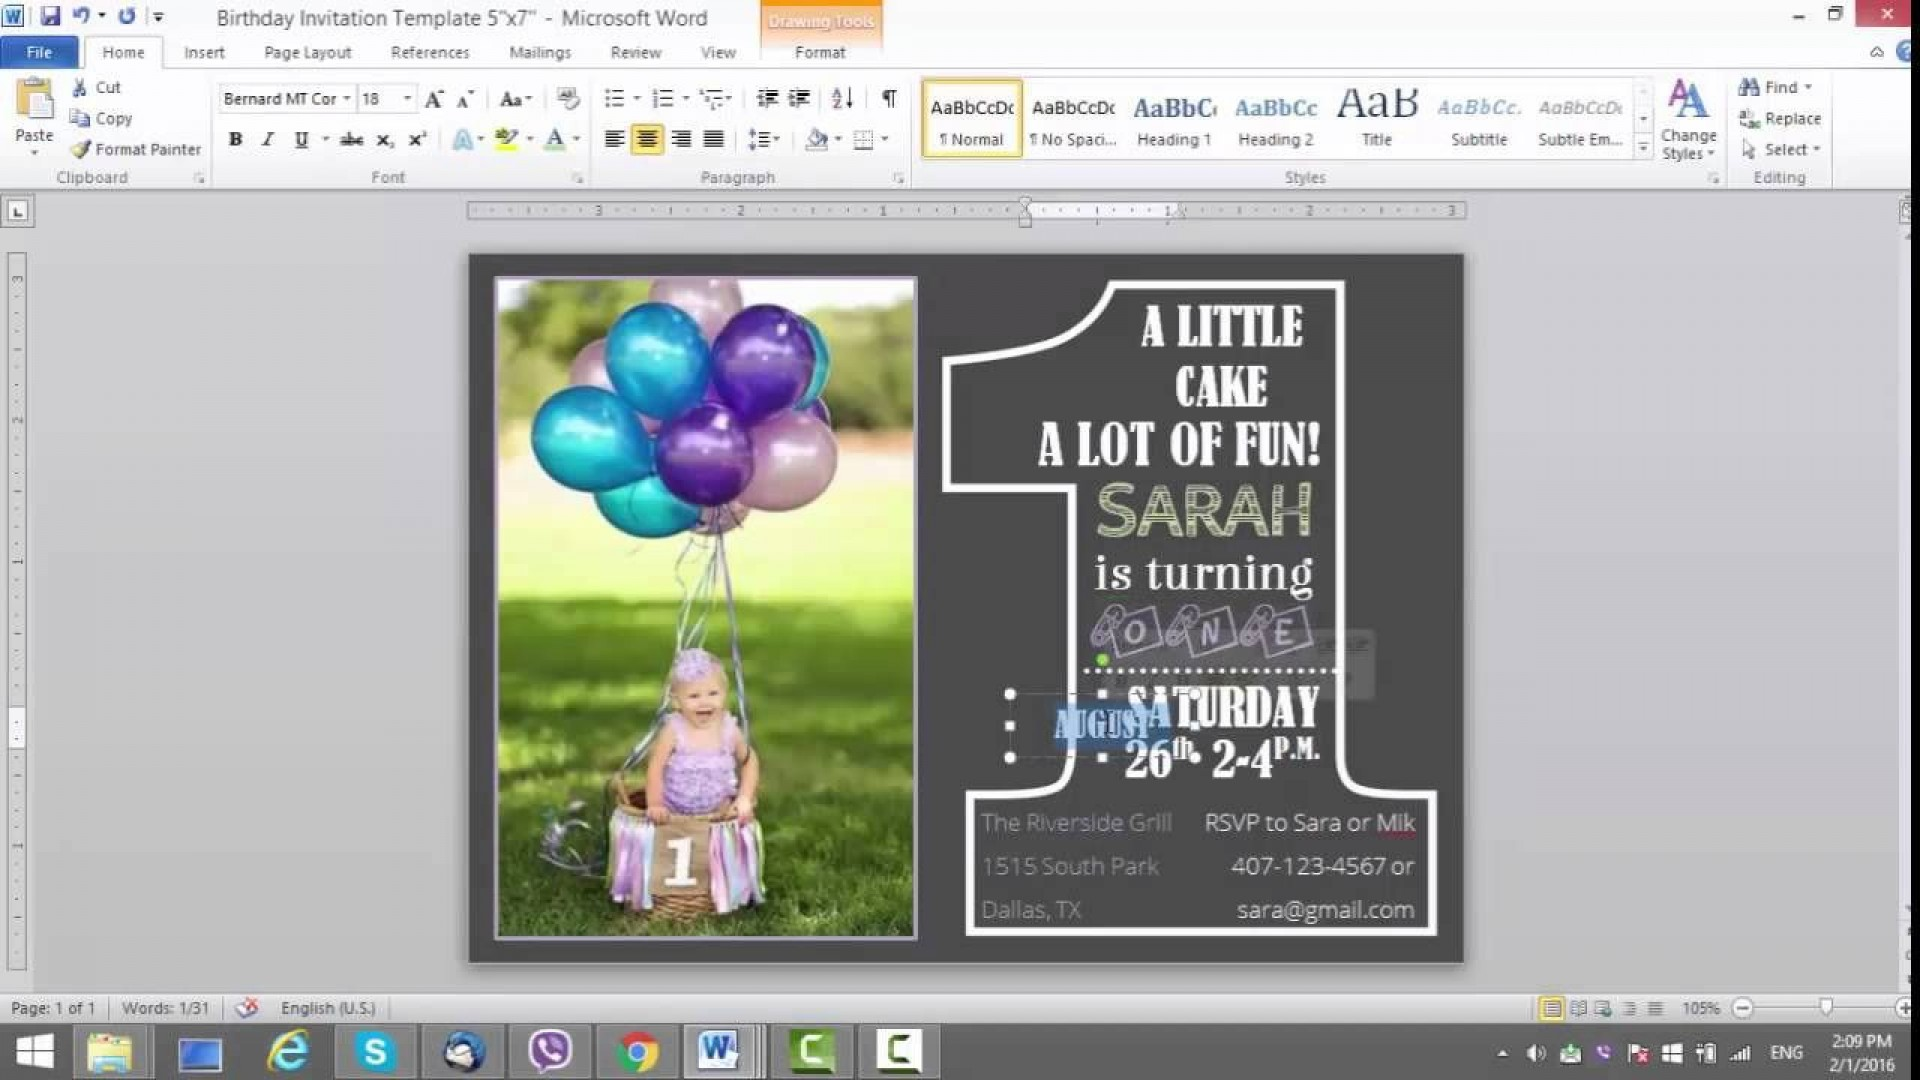 006 Striking Microsoft Word Birthday Invitation Template High Definition  60th 70th Halloween1920